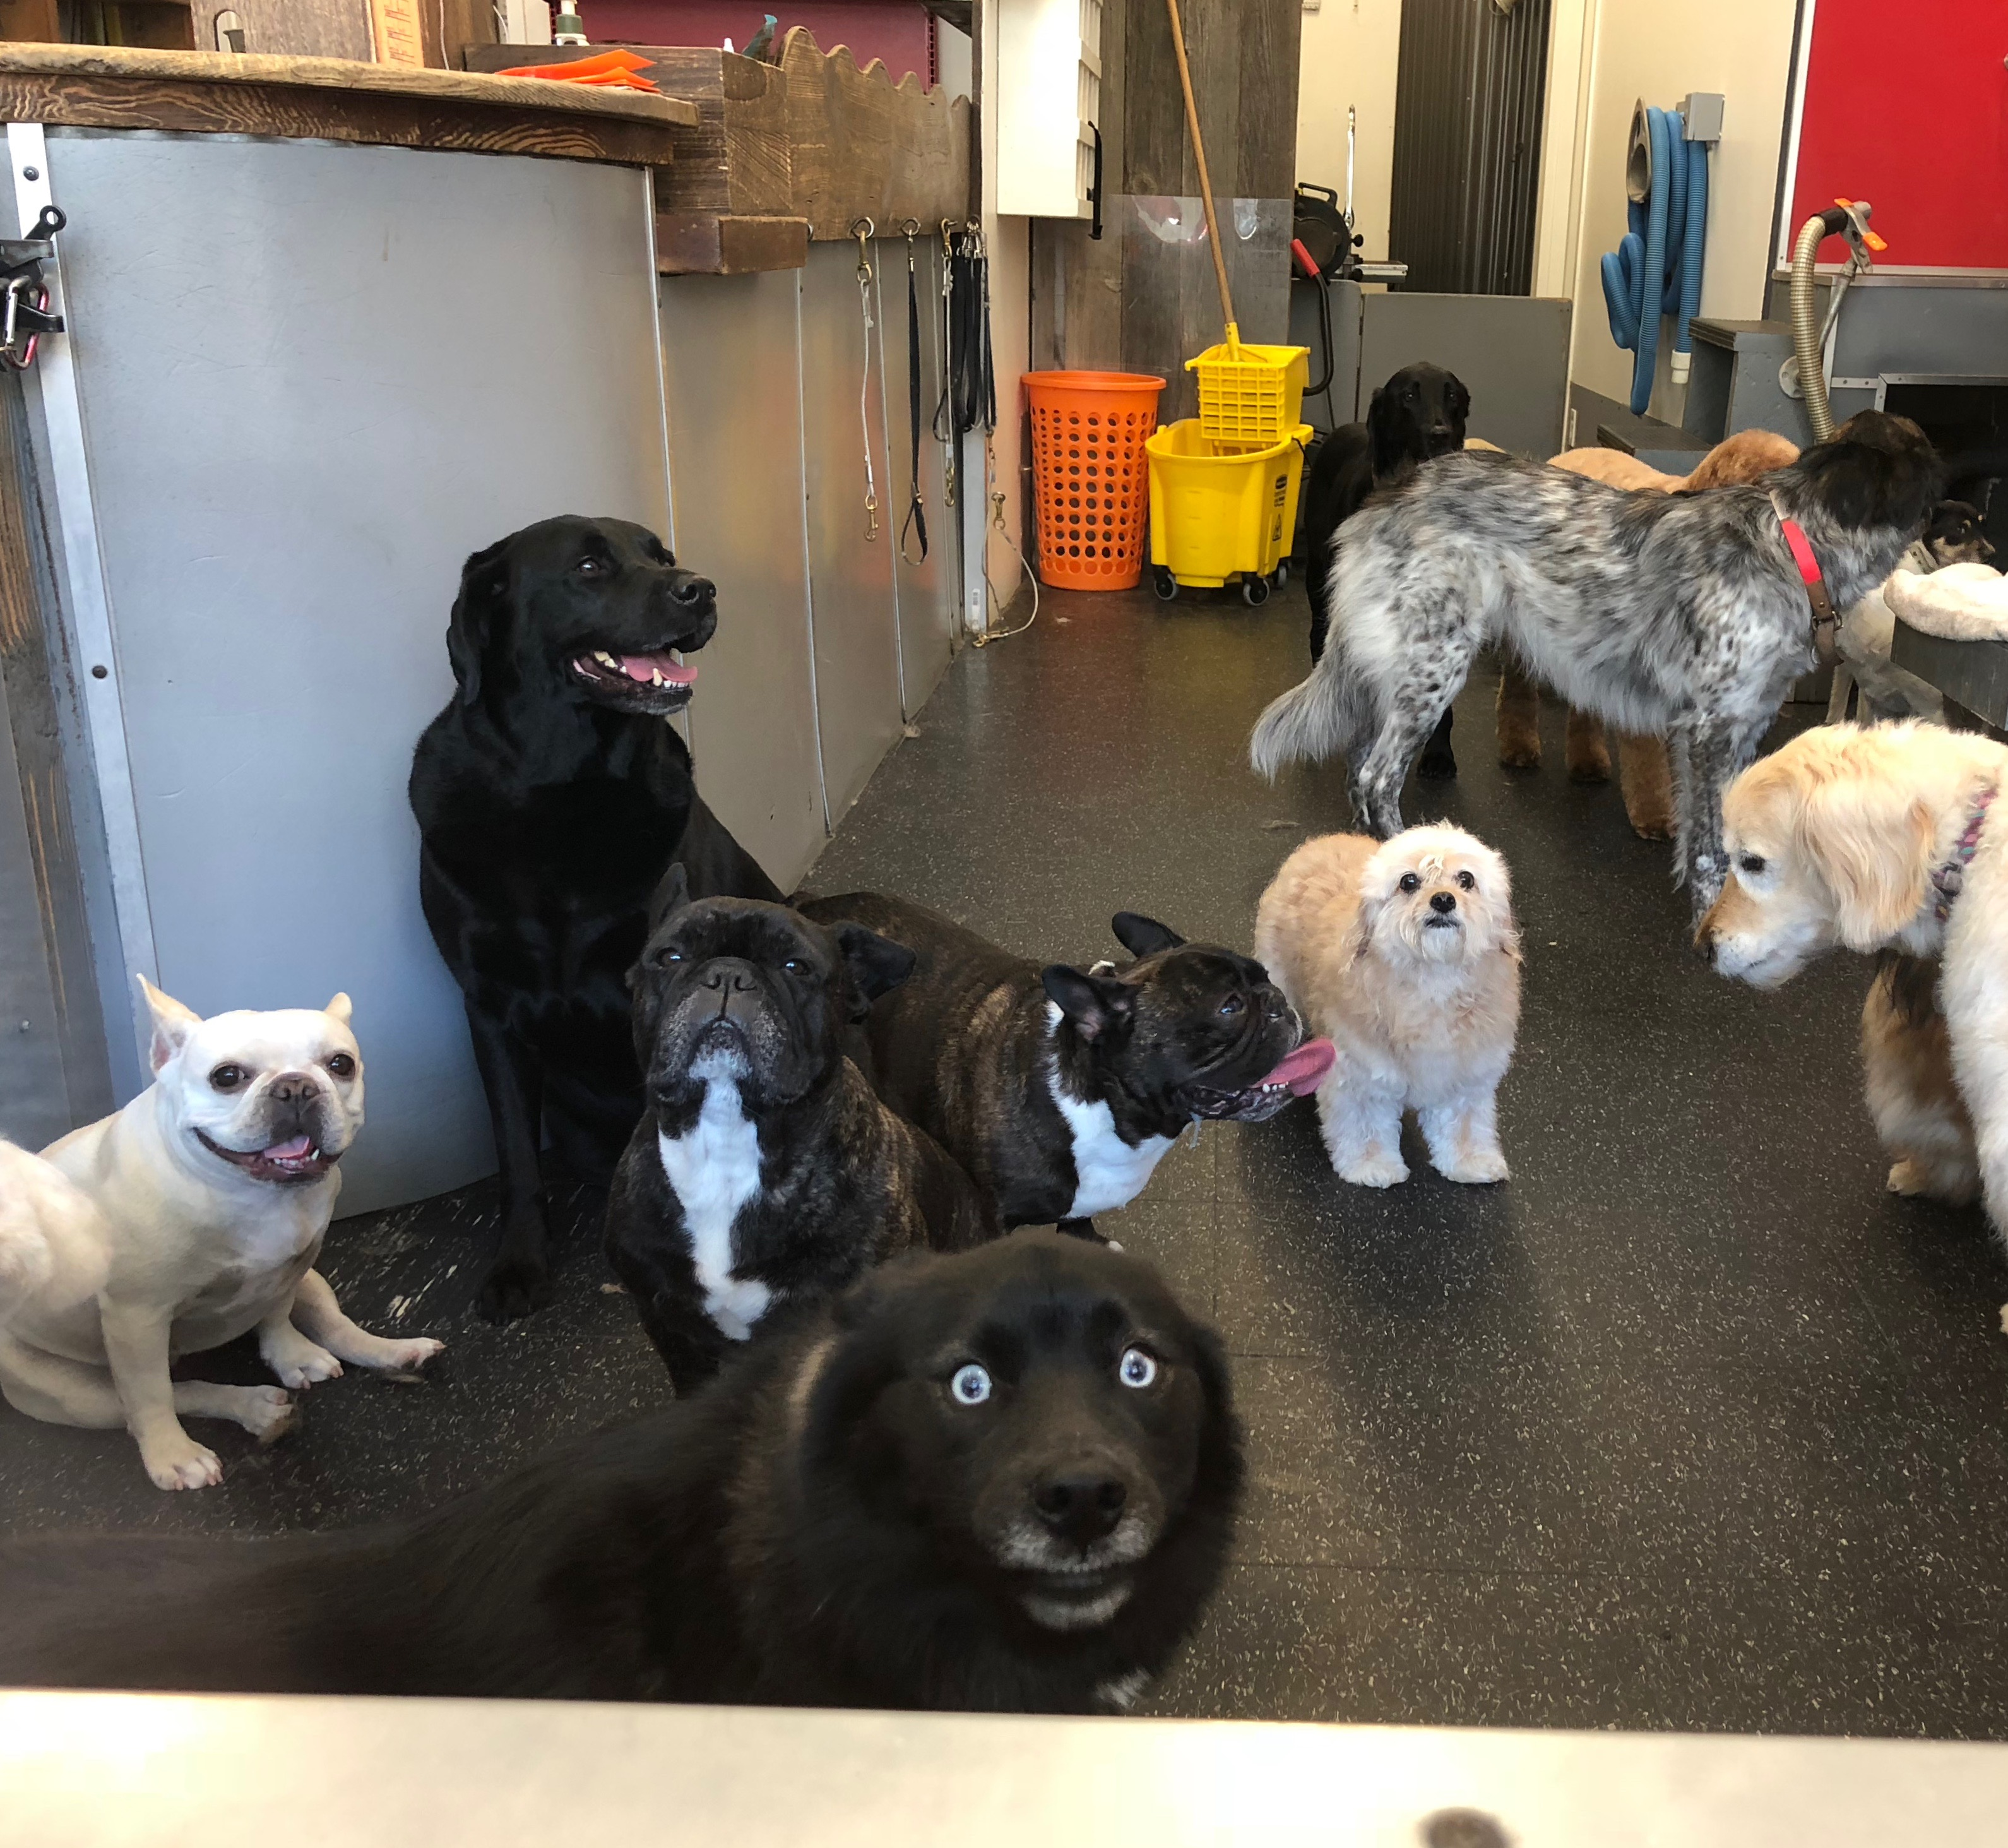 Group Of Dogs In A Dog Grooming Parlor Window